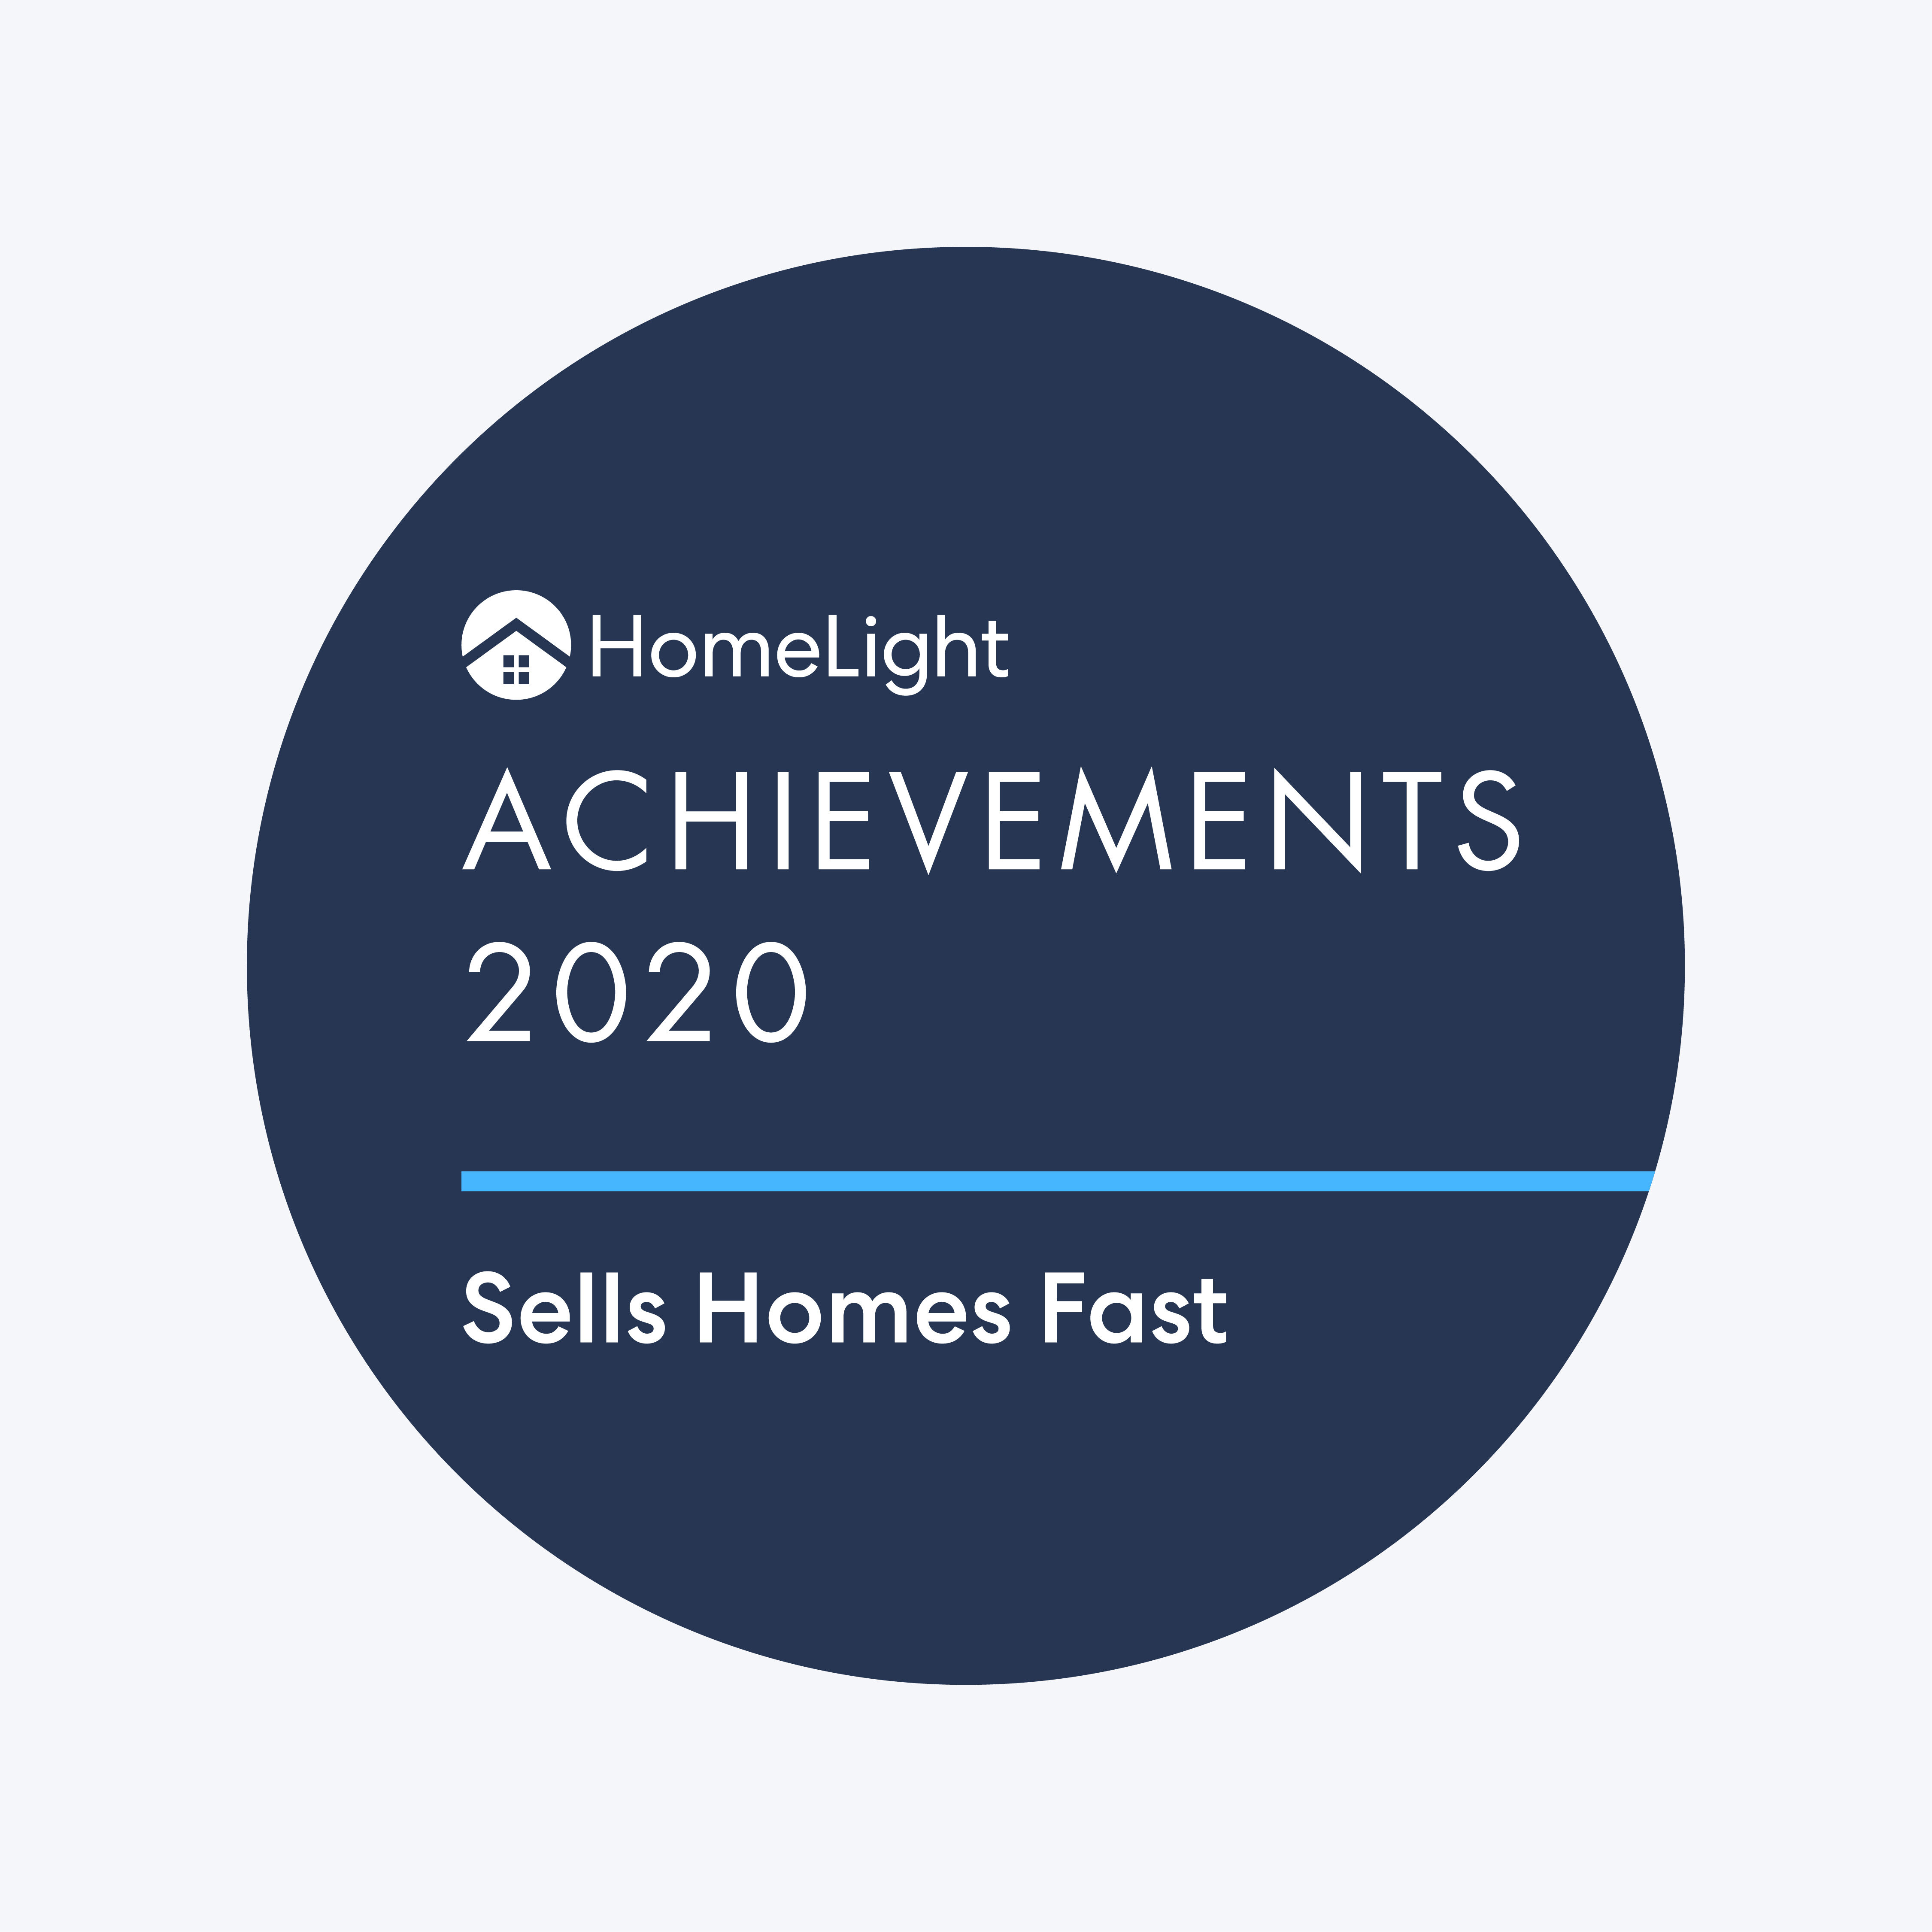 Sells Homes Fast